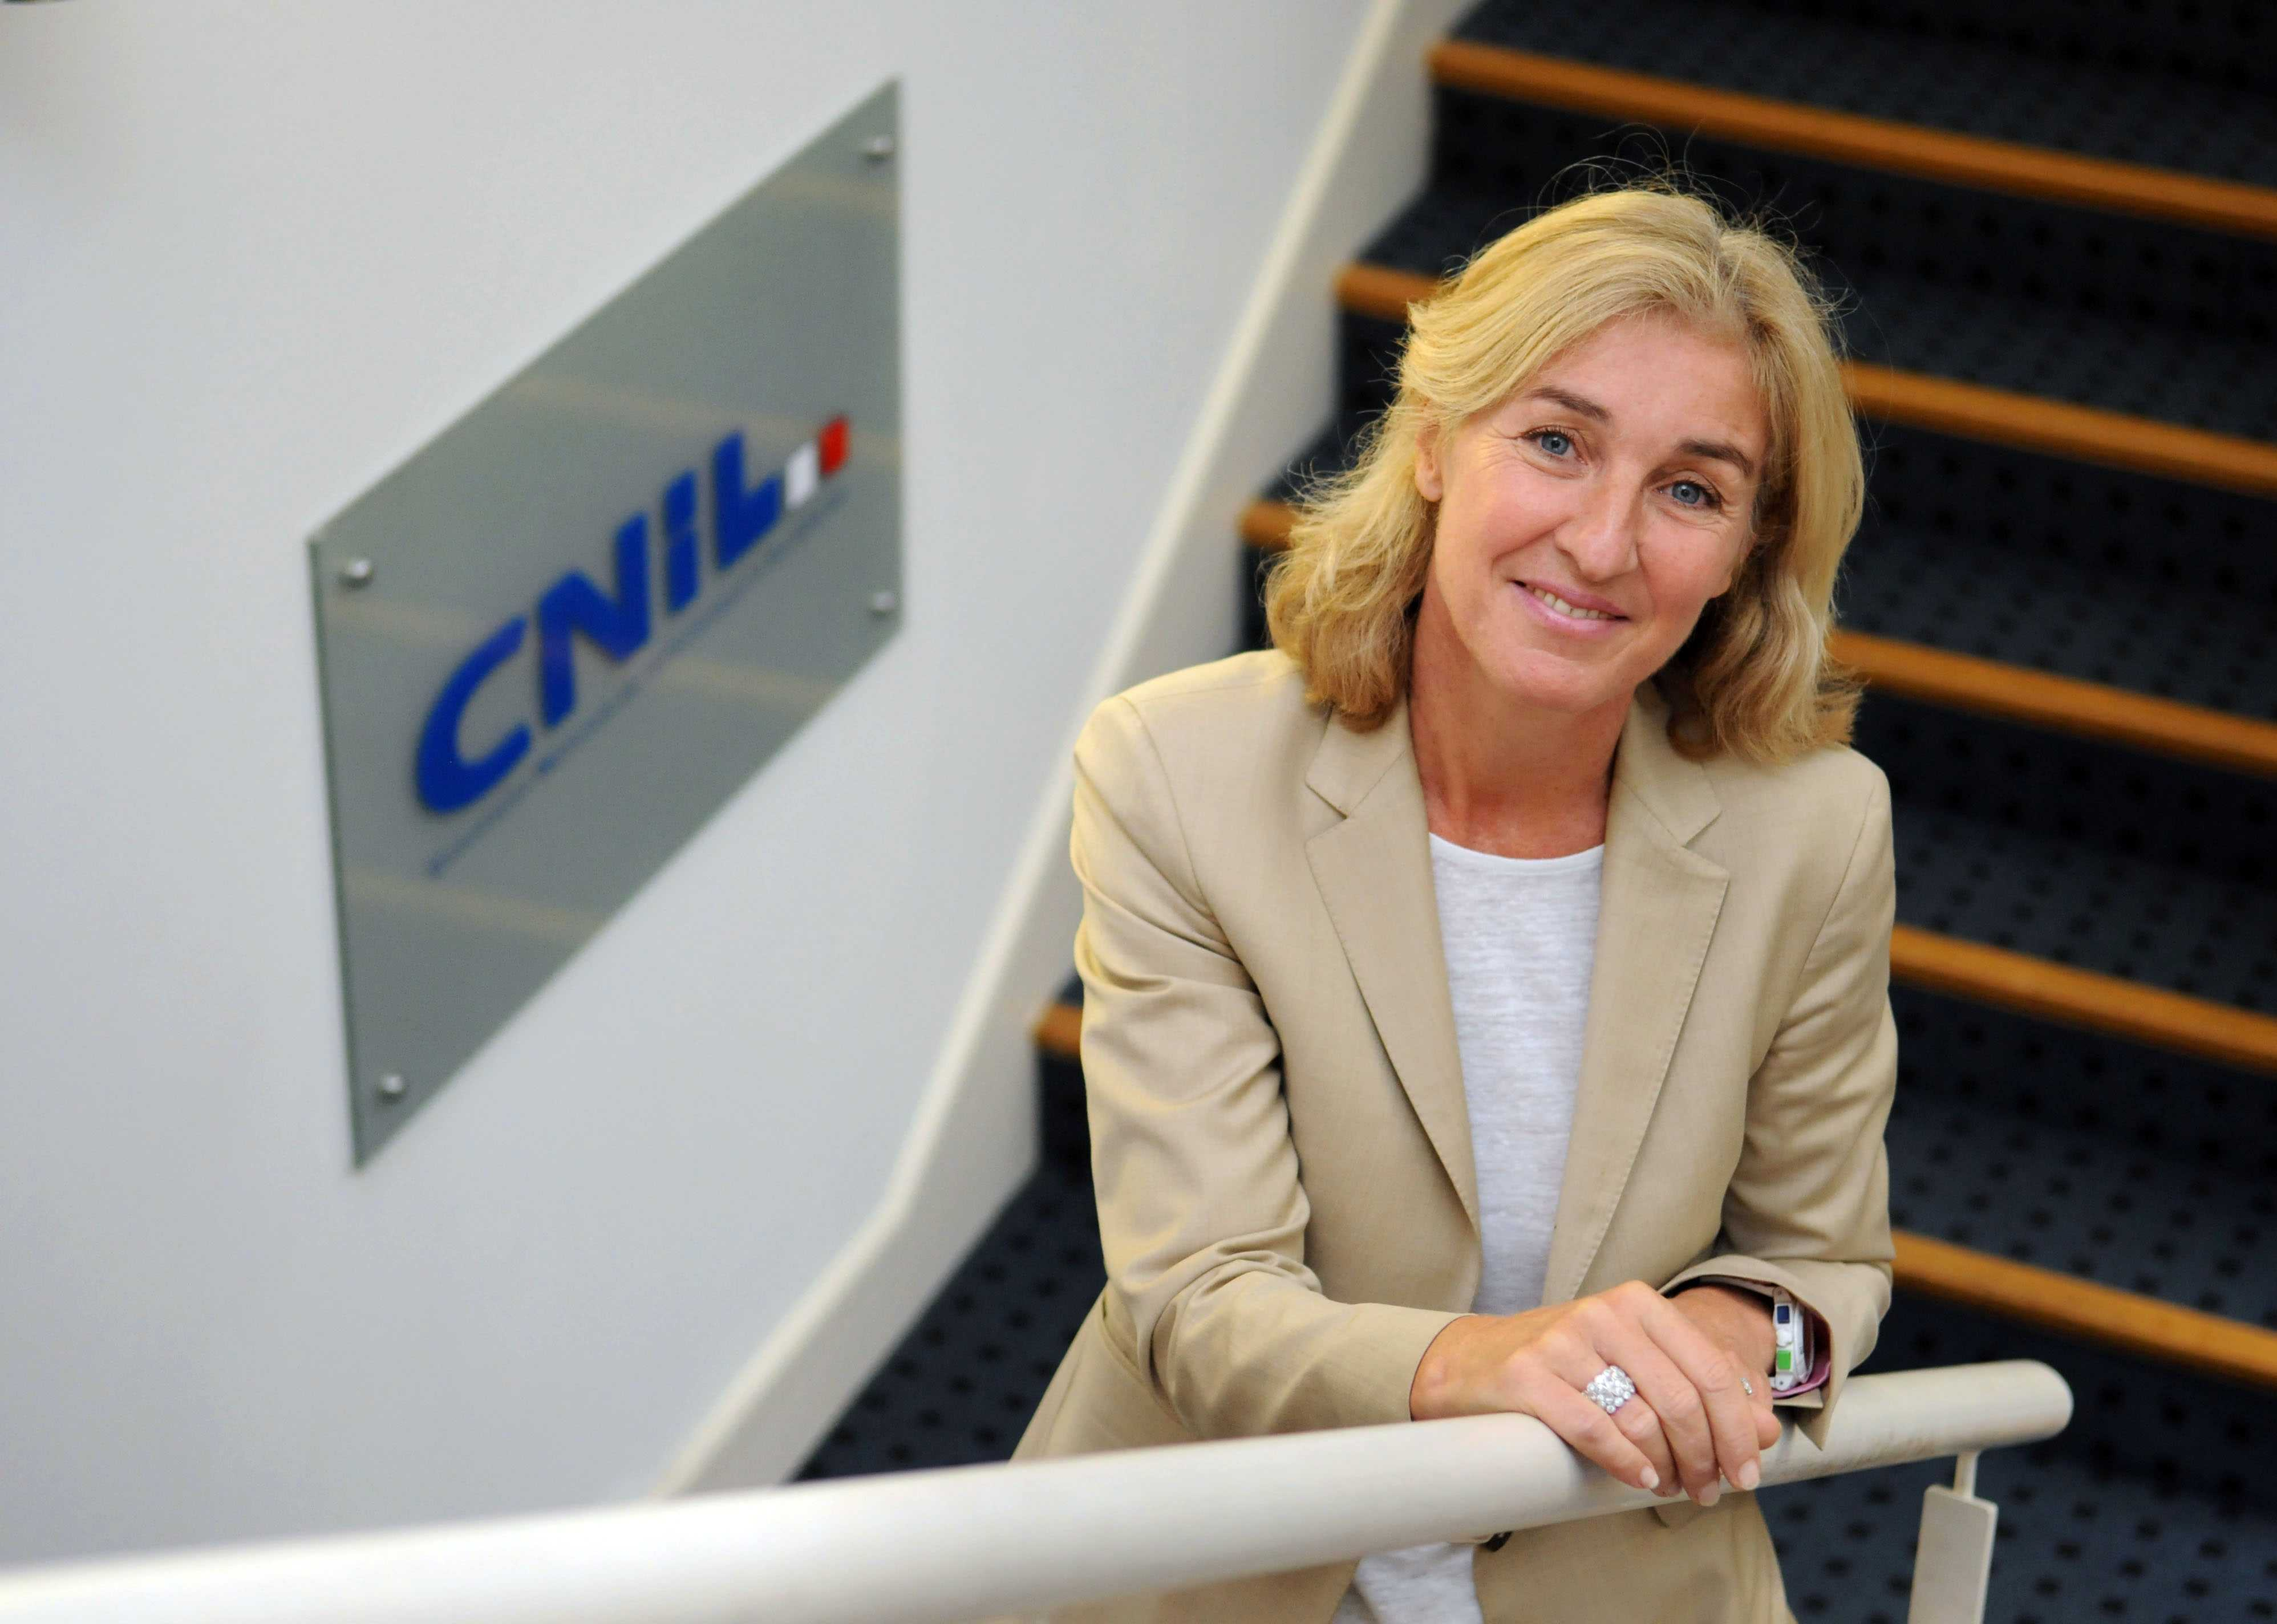 Isabelle Falque-Pierrotin, Chairman of CNIL